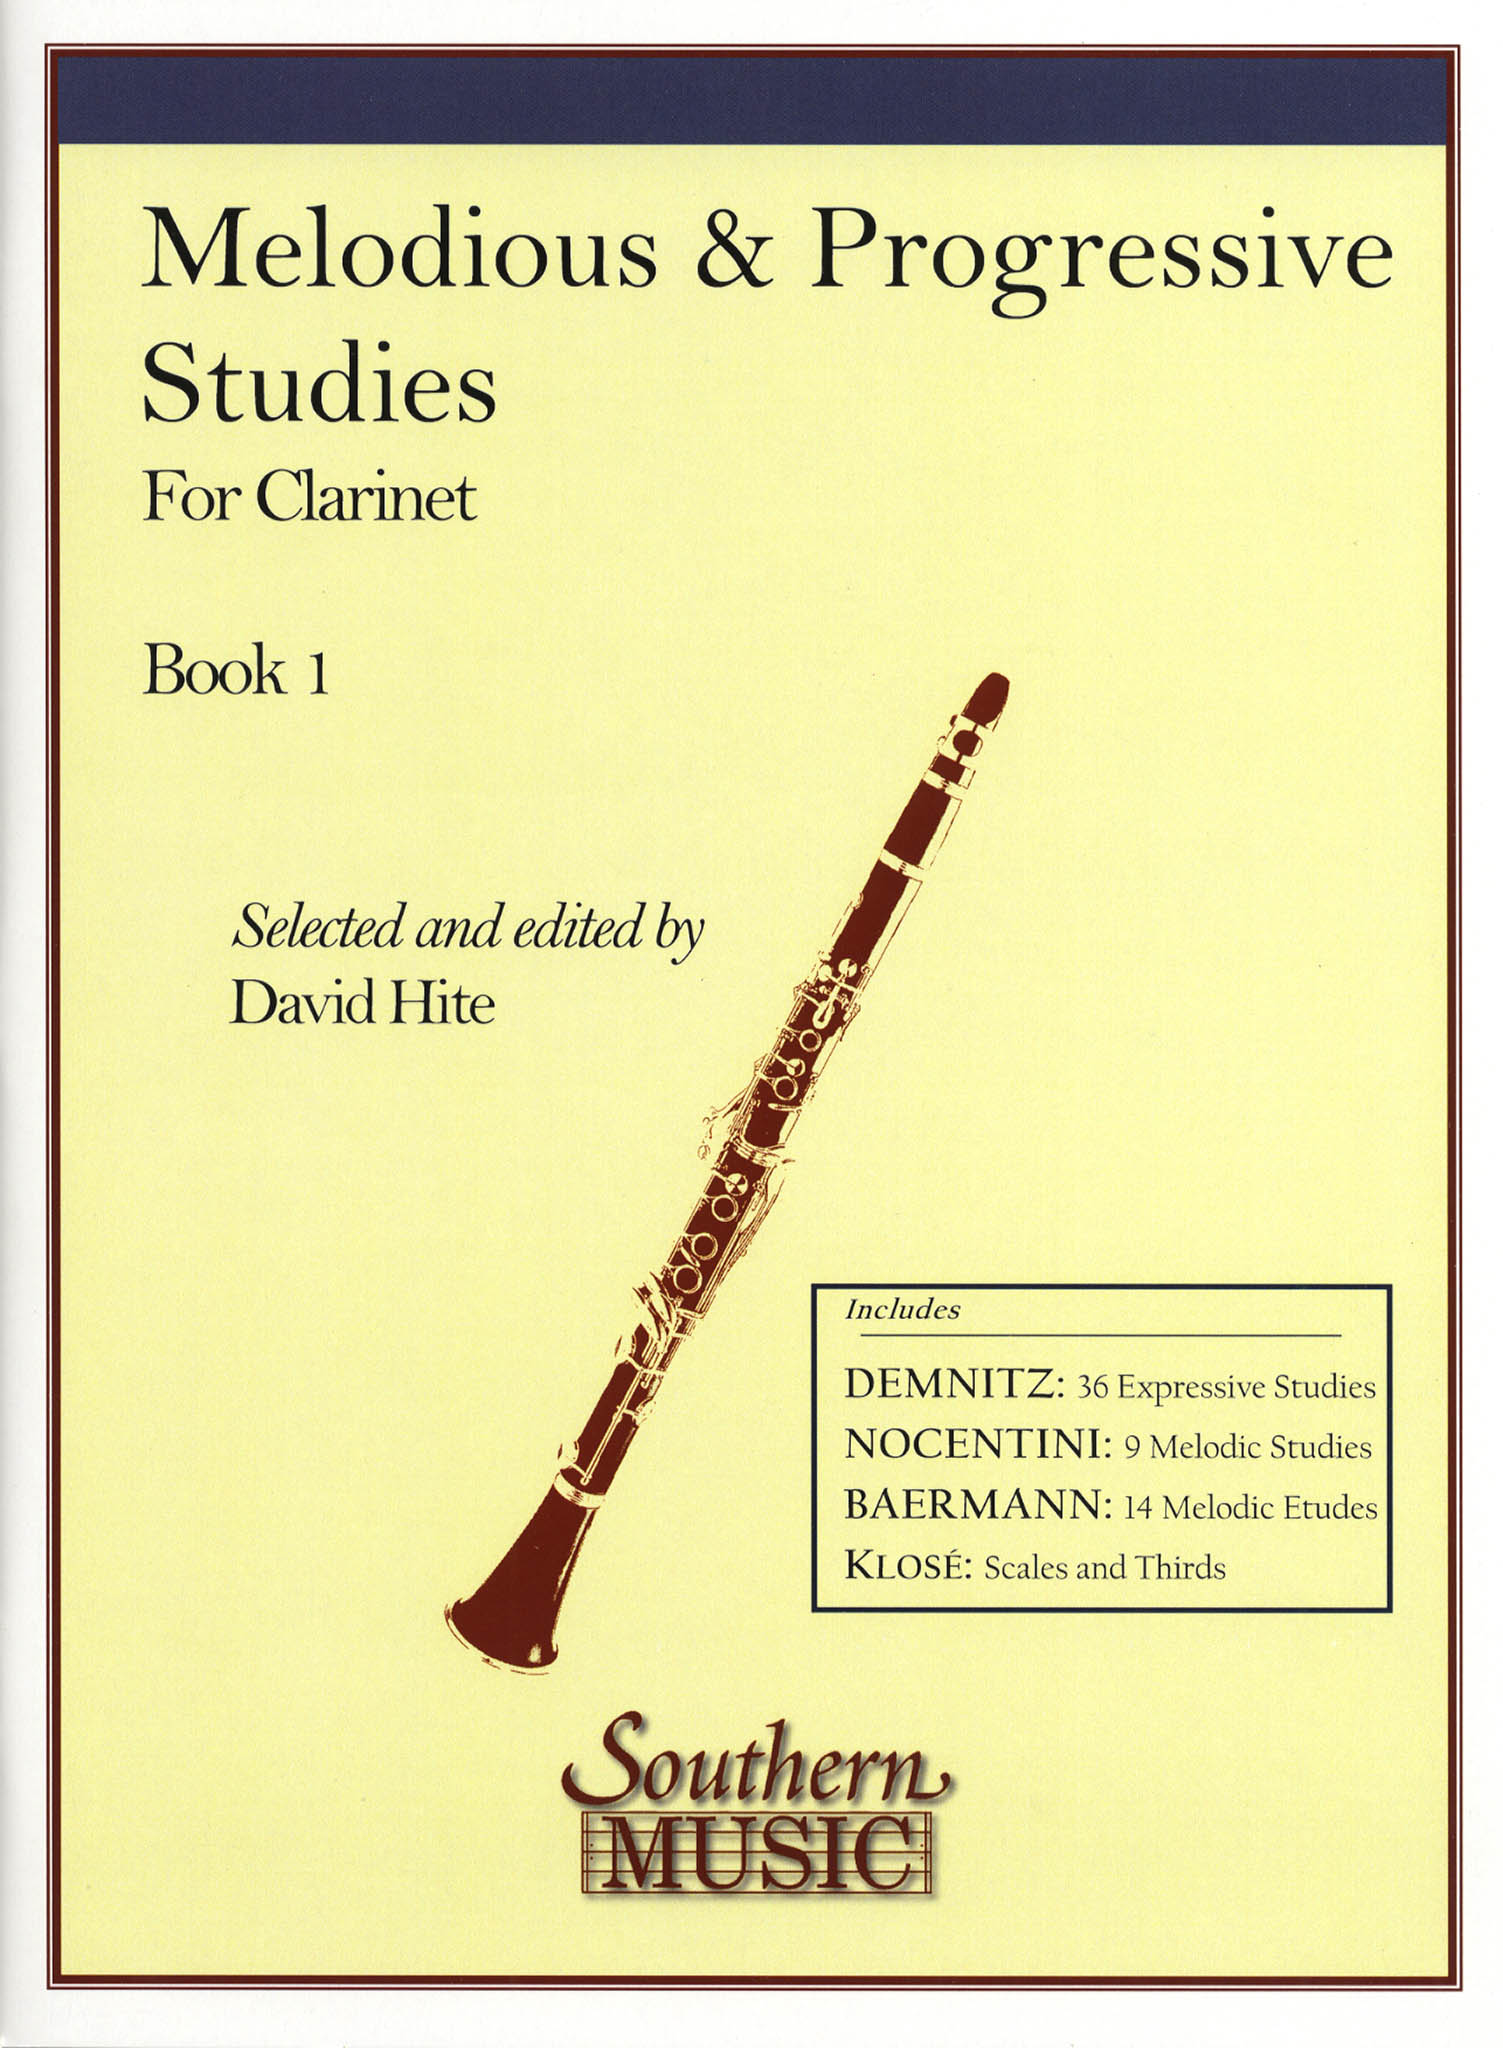 Melodious & Progressive Studies for Clarinet, Book 1 Cover